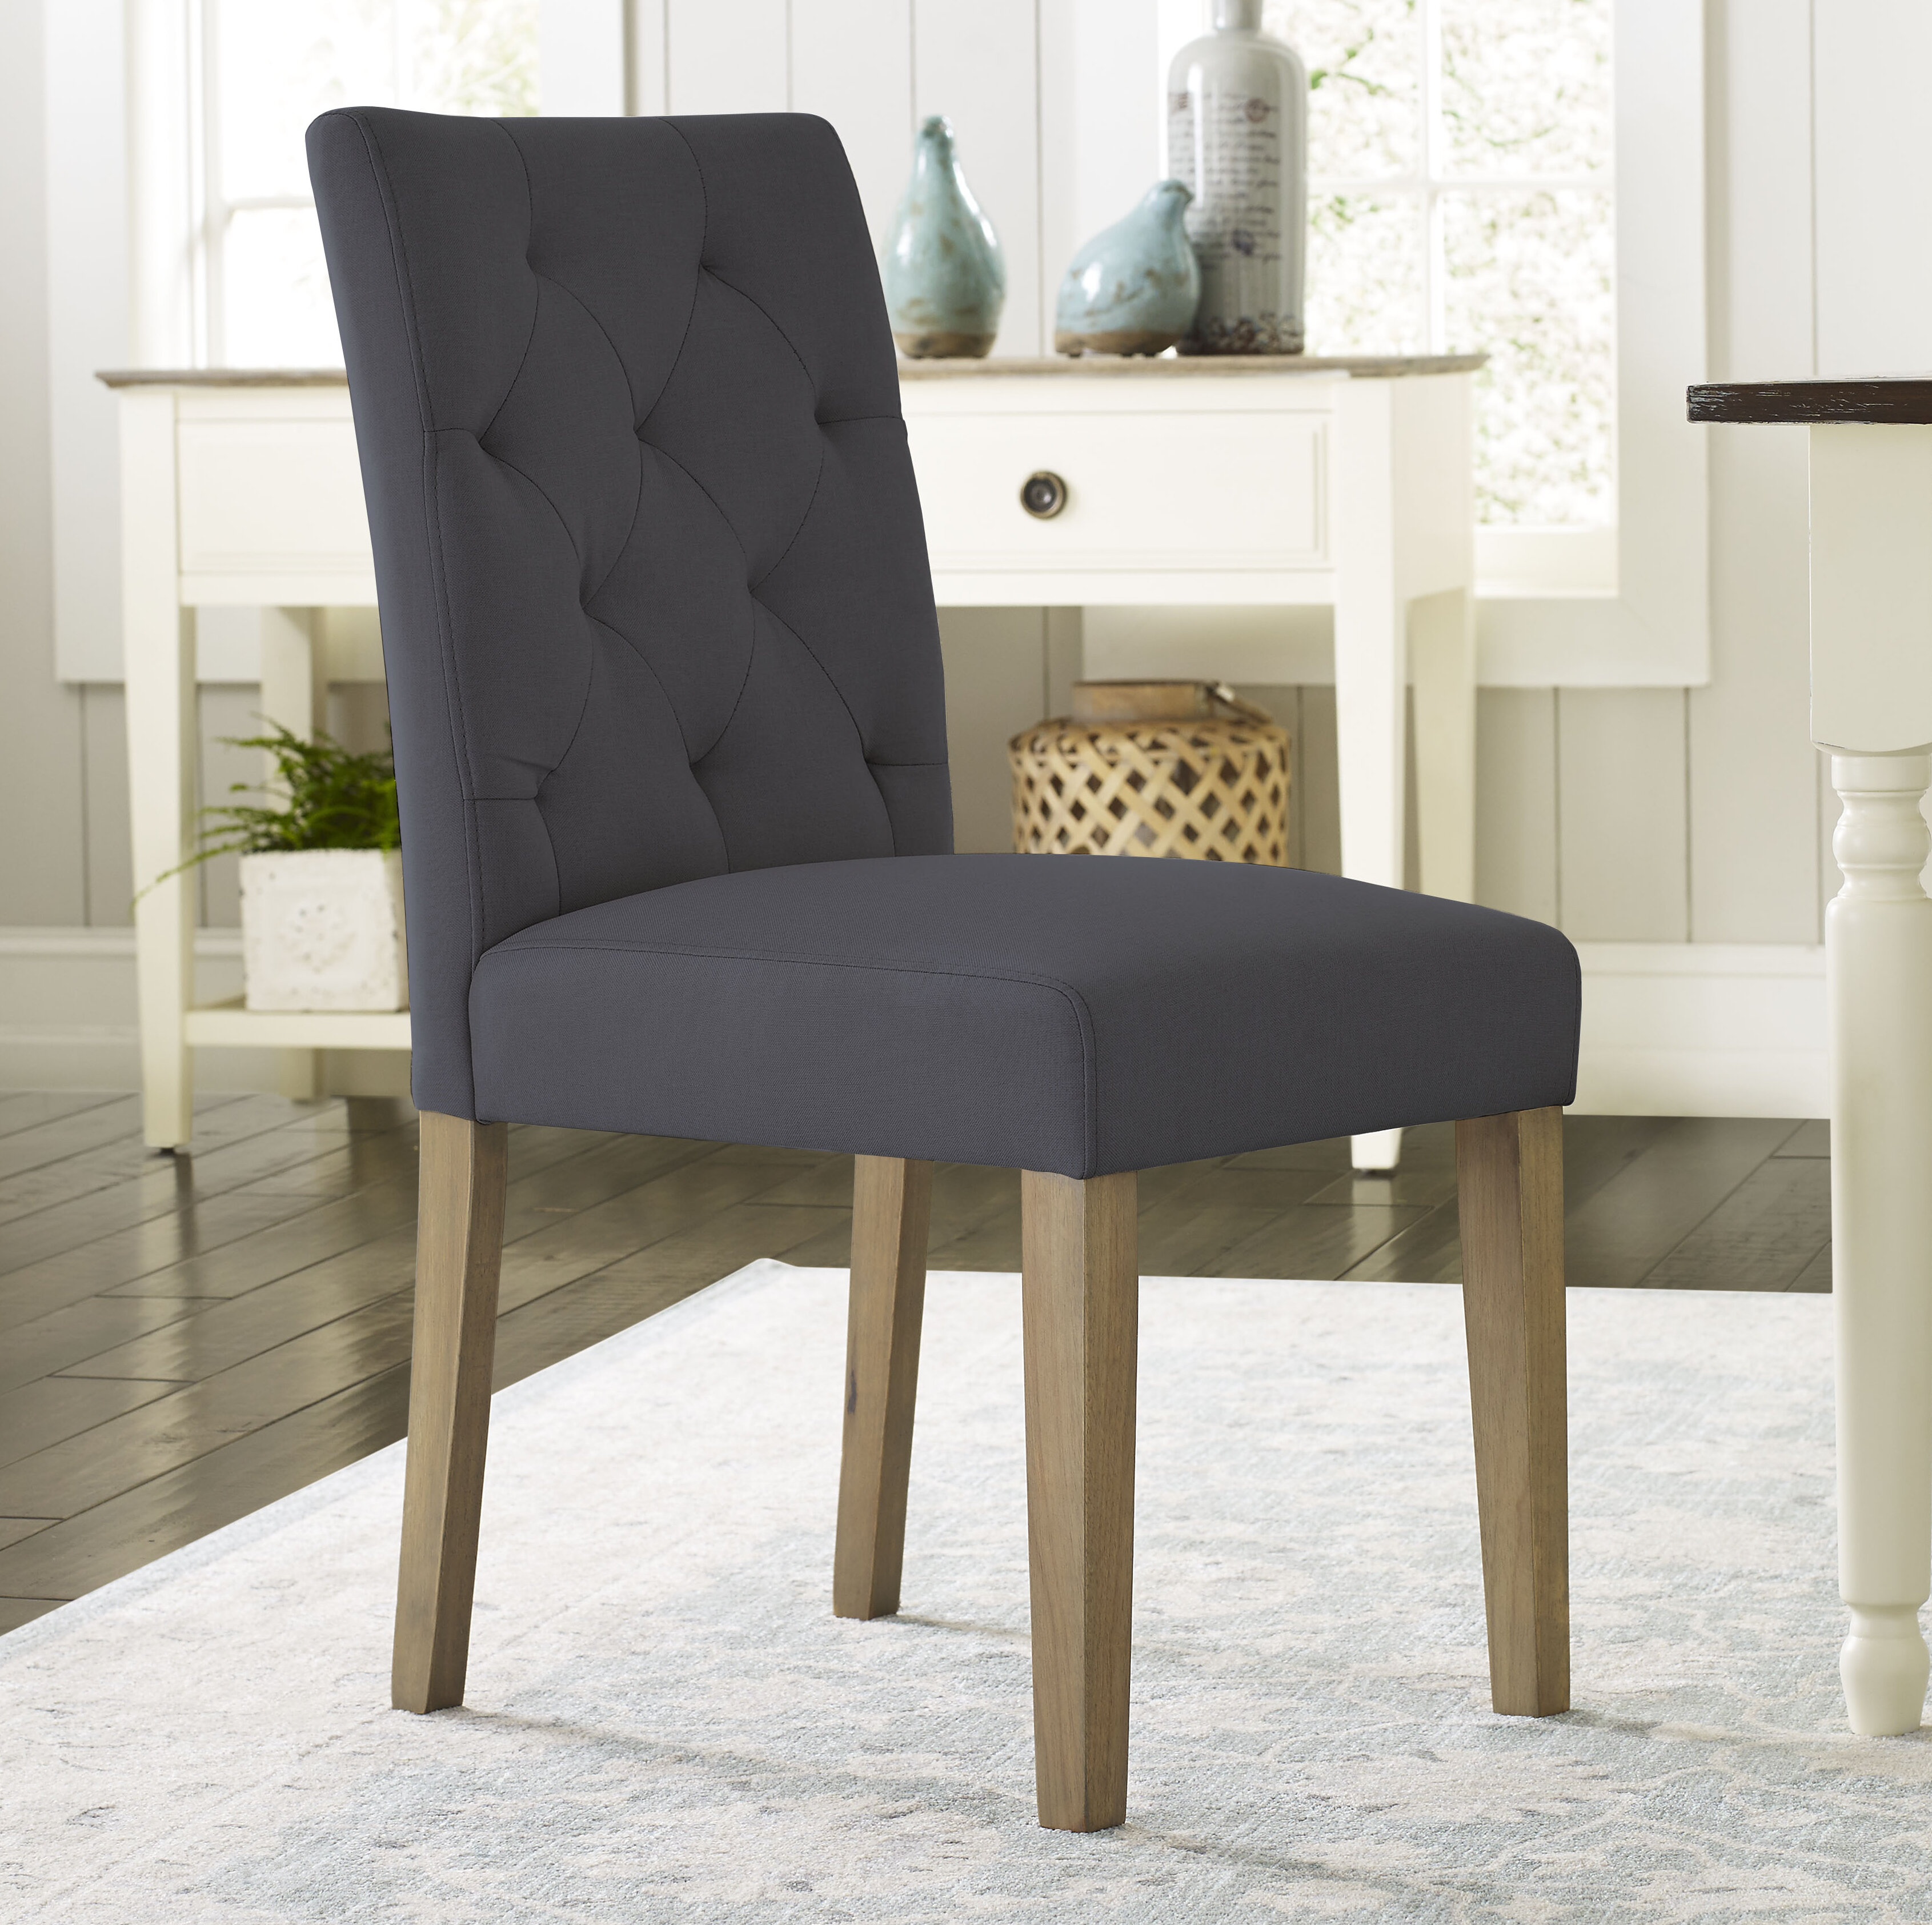 Asuncion Tufted Upholstered Dining Chair